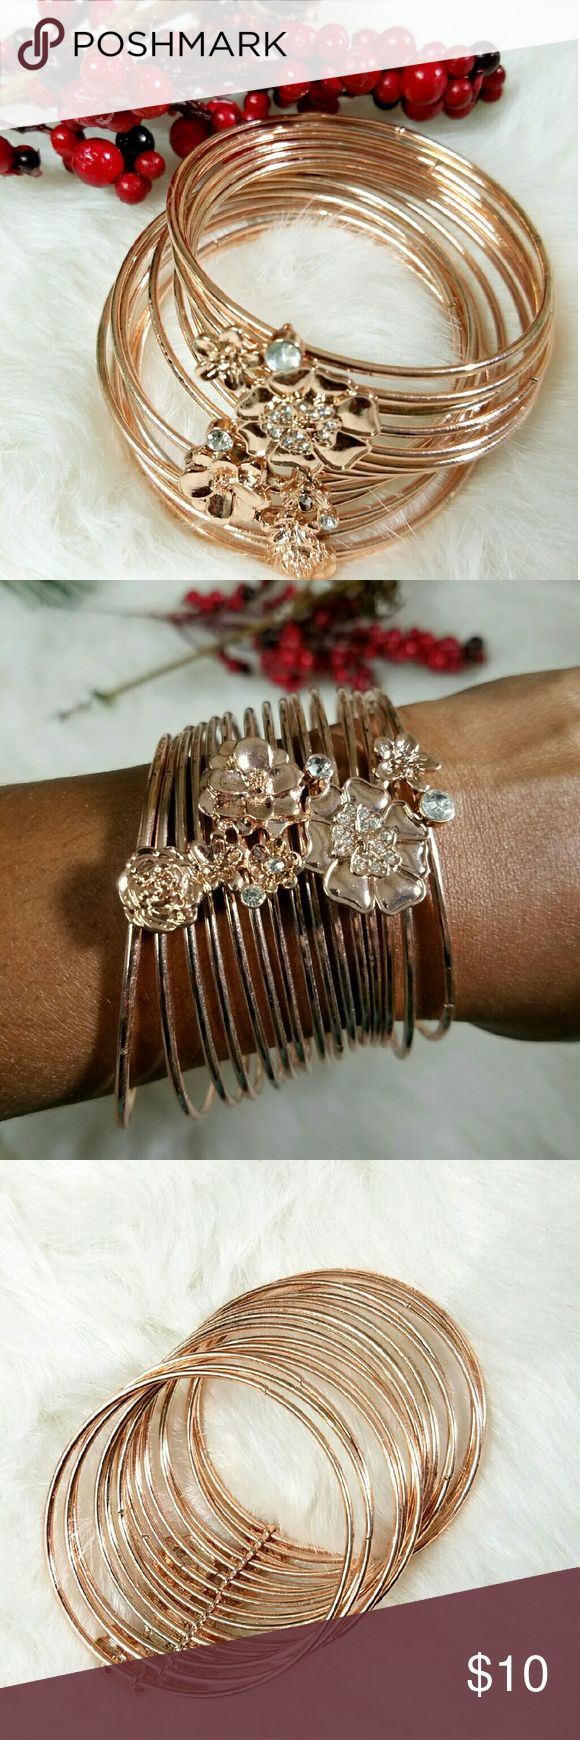 Rose Gold Plated Bangles The Bangles are all attached by this beautiful flower diamond Accent design. Absolutely stunning! Jewelry Bracelets